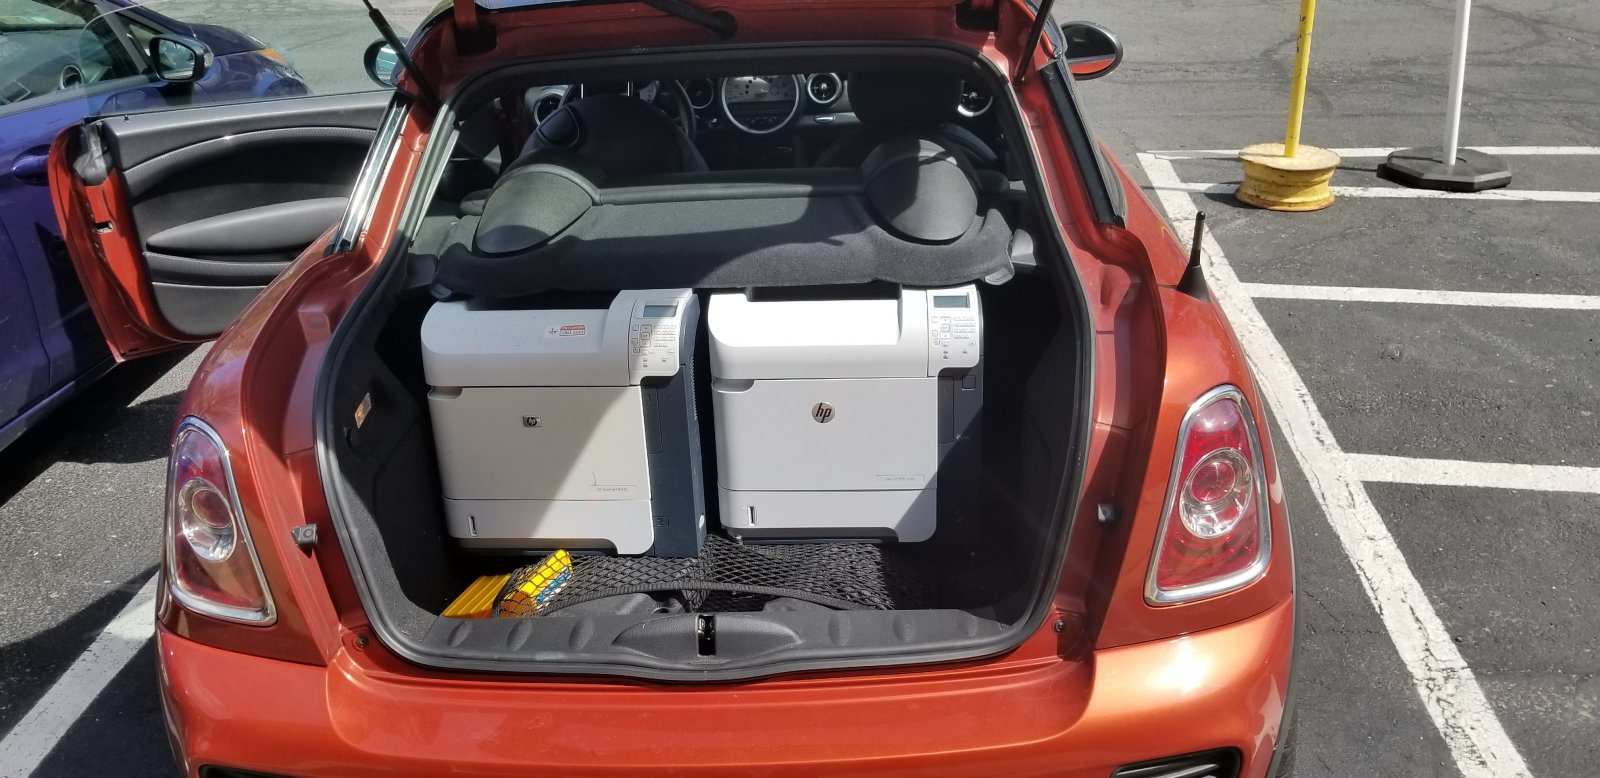 Stuff that fits into a Coupe